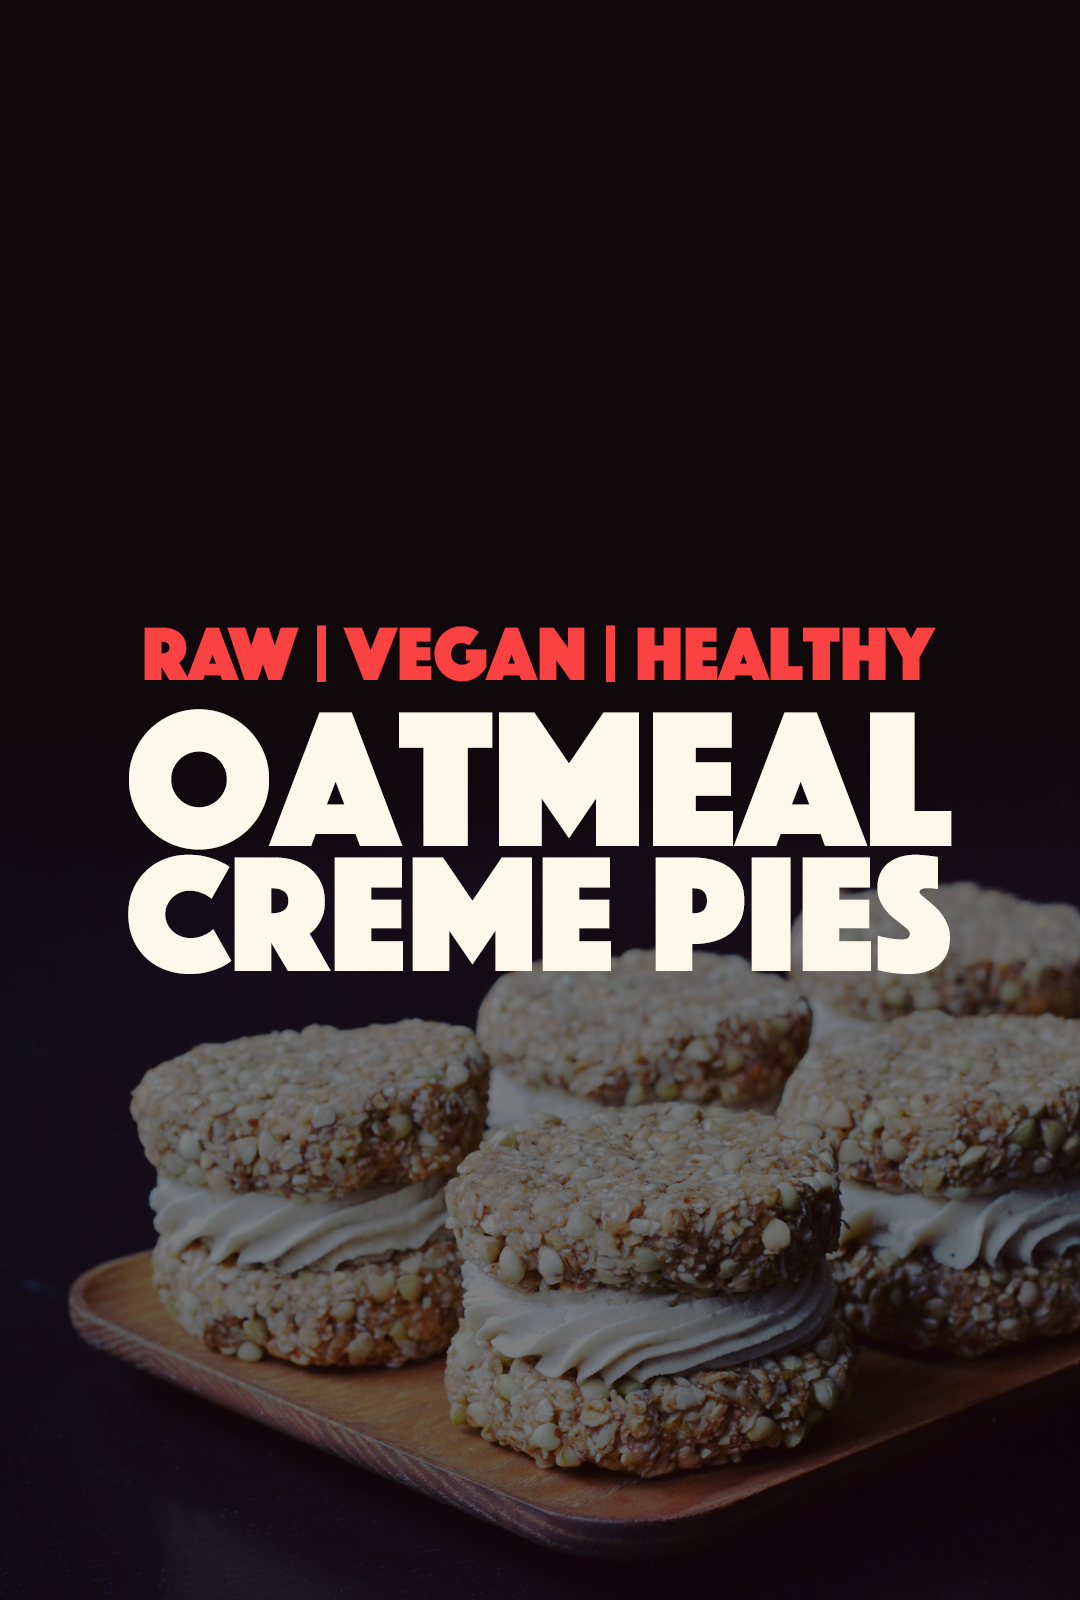 Raw Vegan Oatmeal Creme Pies | http://BananaBloom.com #rawfood #rawbaking #oatmealcremepies